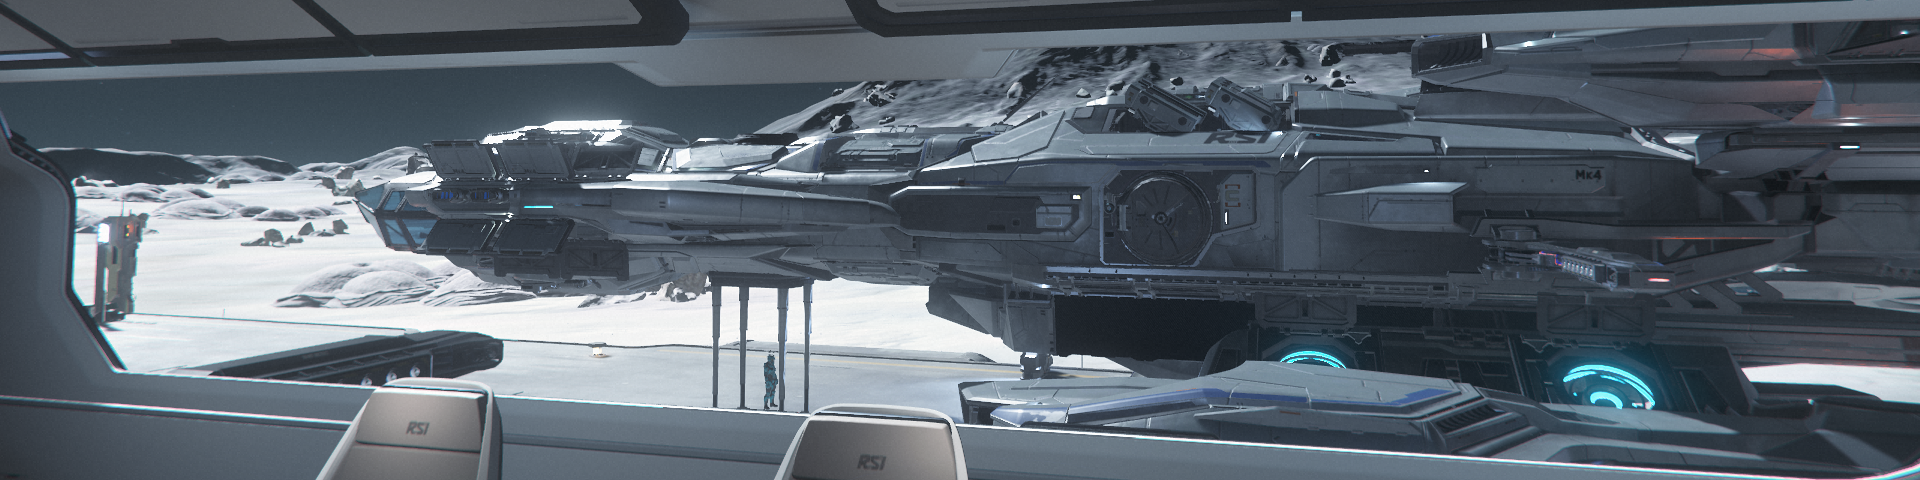 The view of a 61 metre Constellation class space cutter with pilot for scale - as seen through the window of another ship sharing the same landing pad.